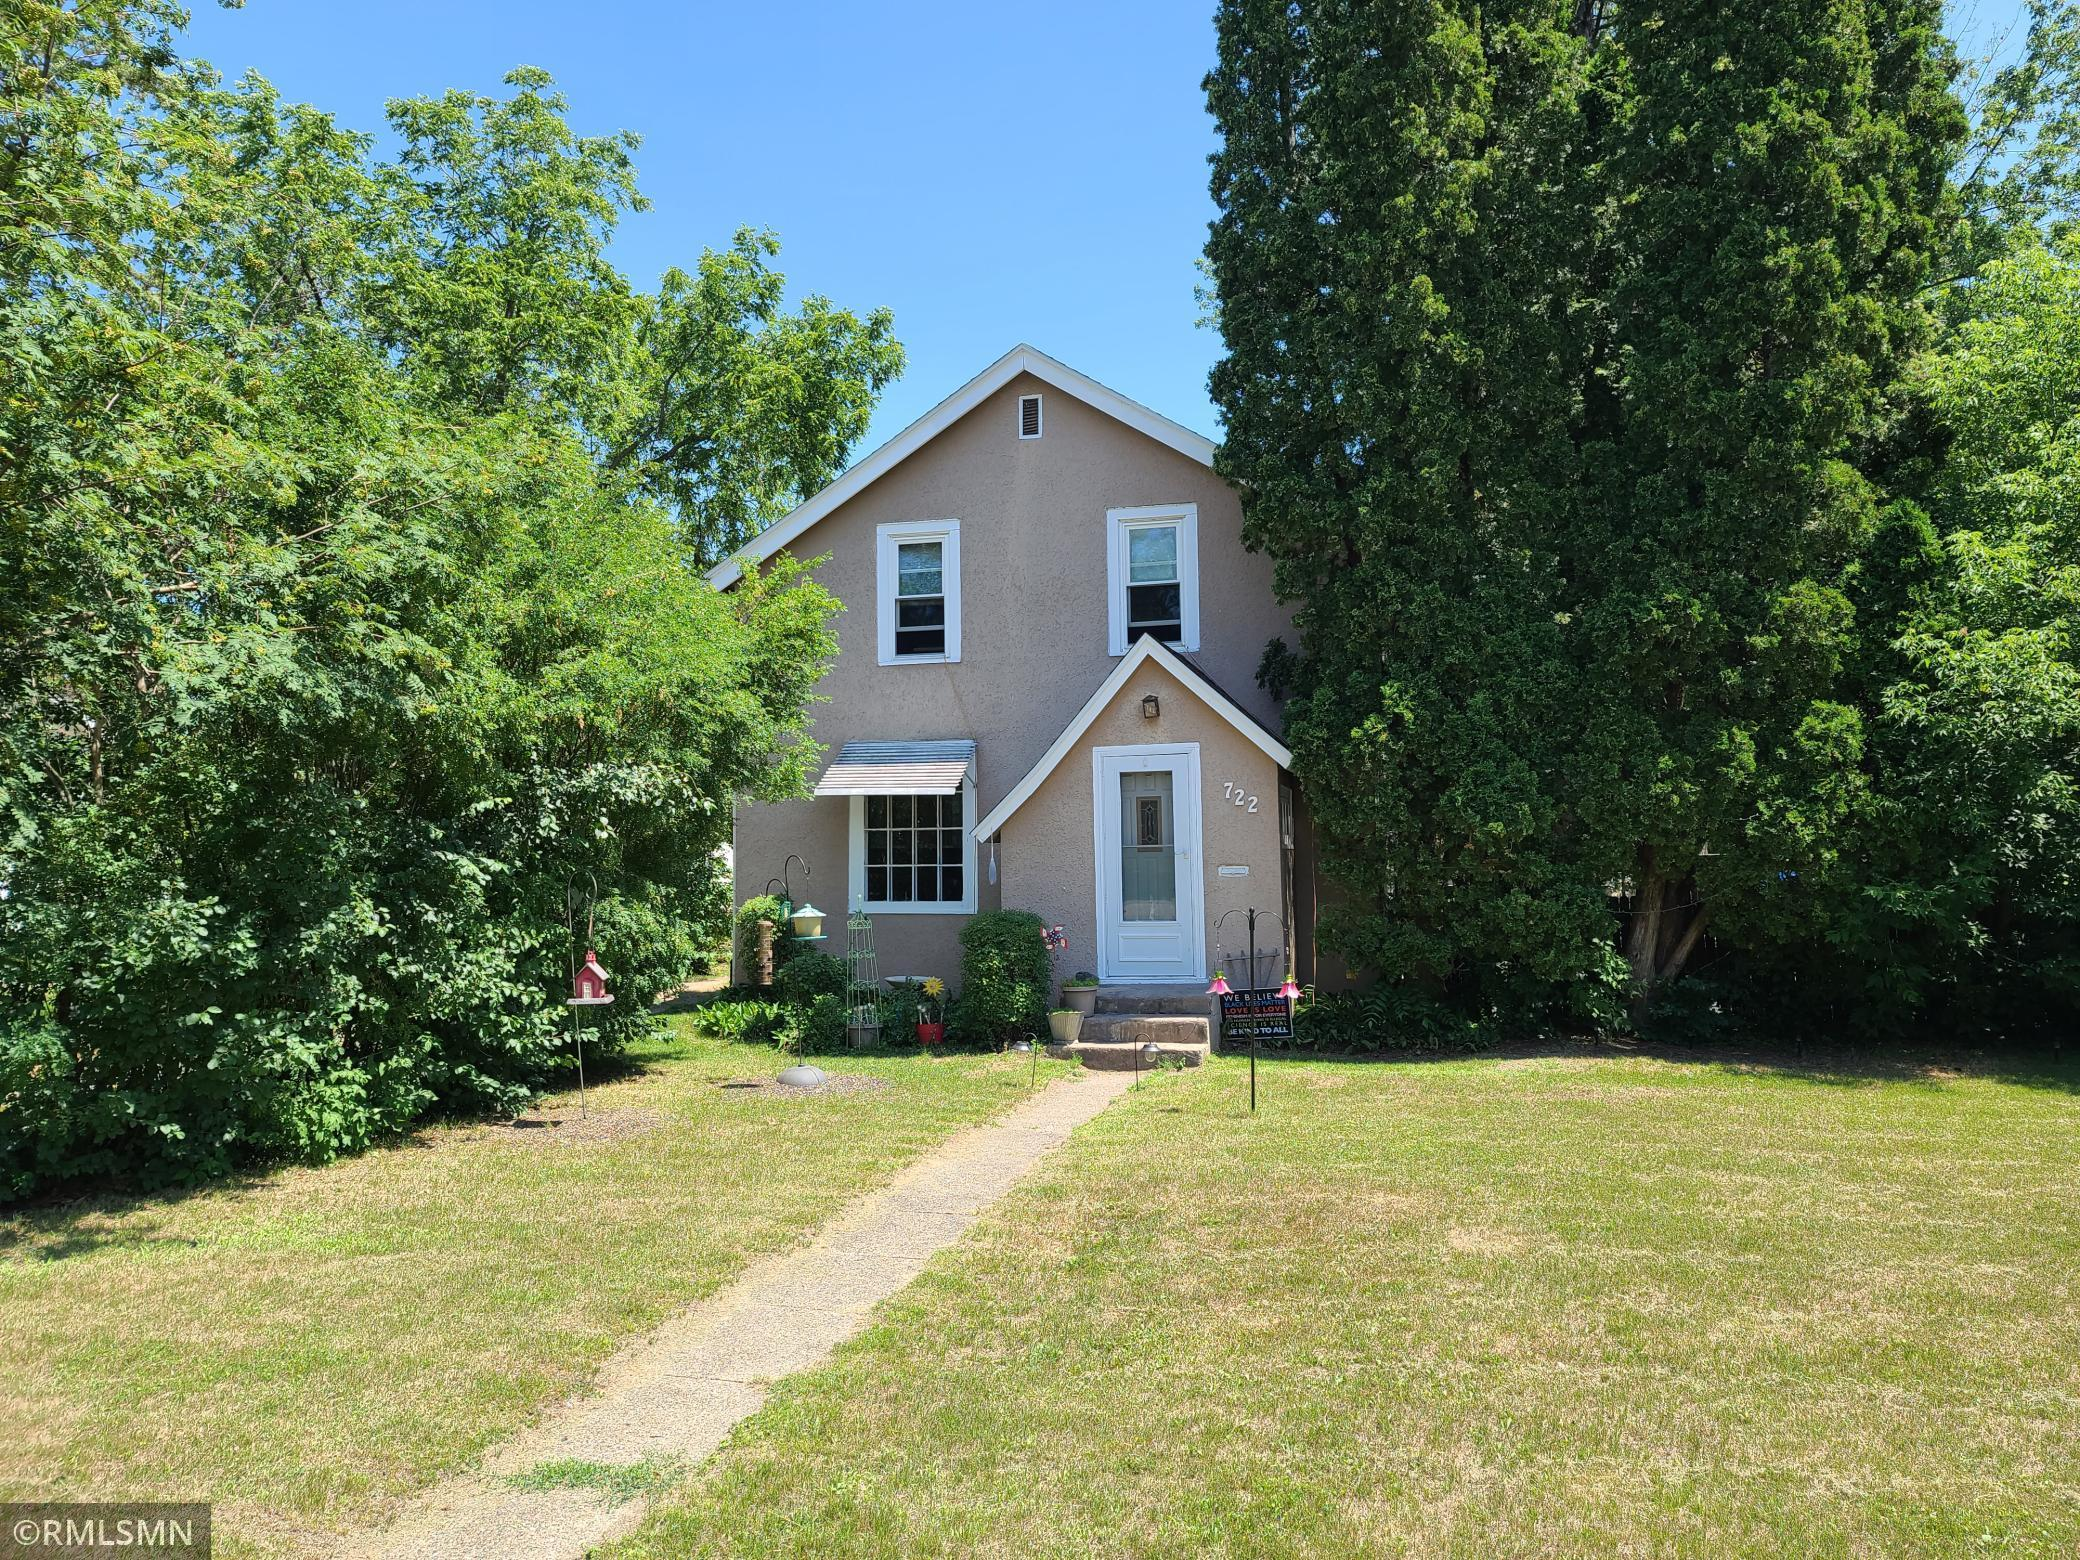 Here is your opportunity to build sweat equity! This 4 bed, 2 bath home doesn't need much and features a detached garage, fenced back yard, back deck for all your summer activities, and a main floor master!